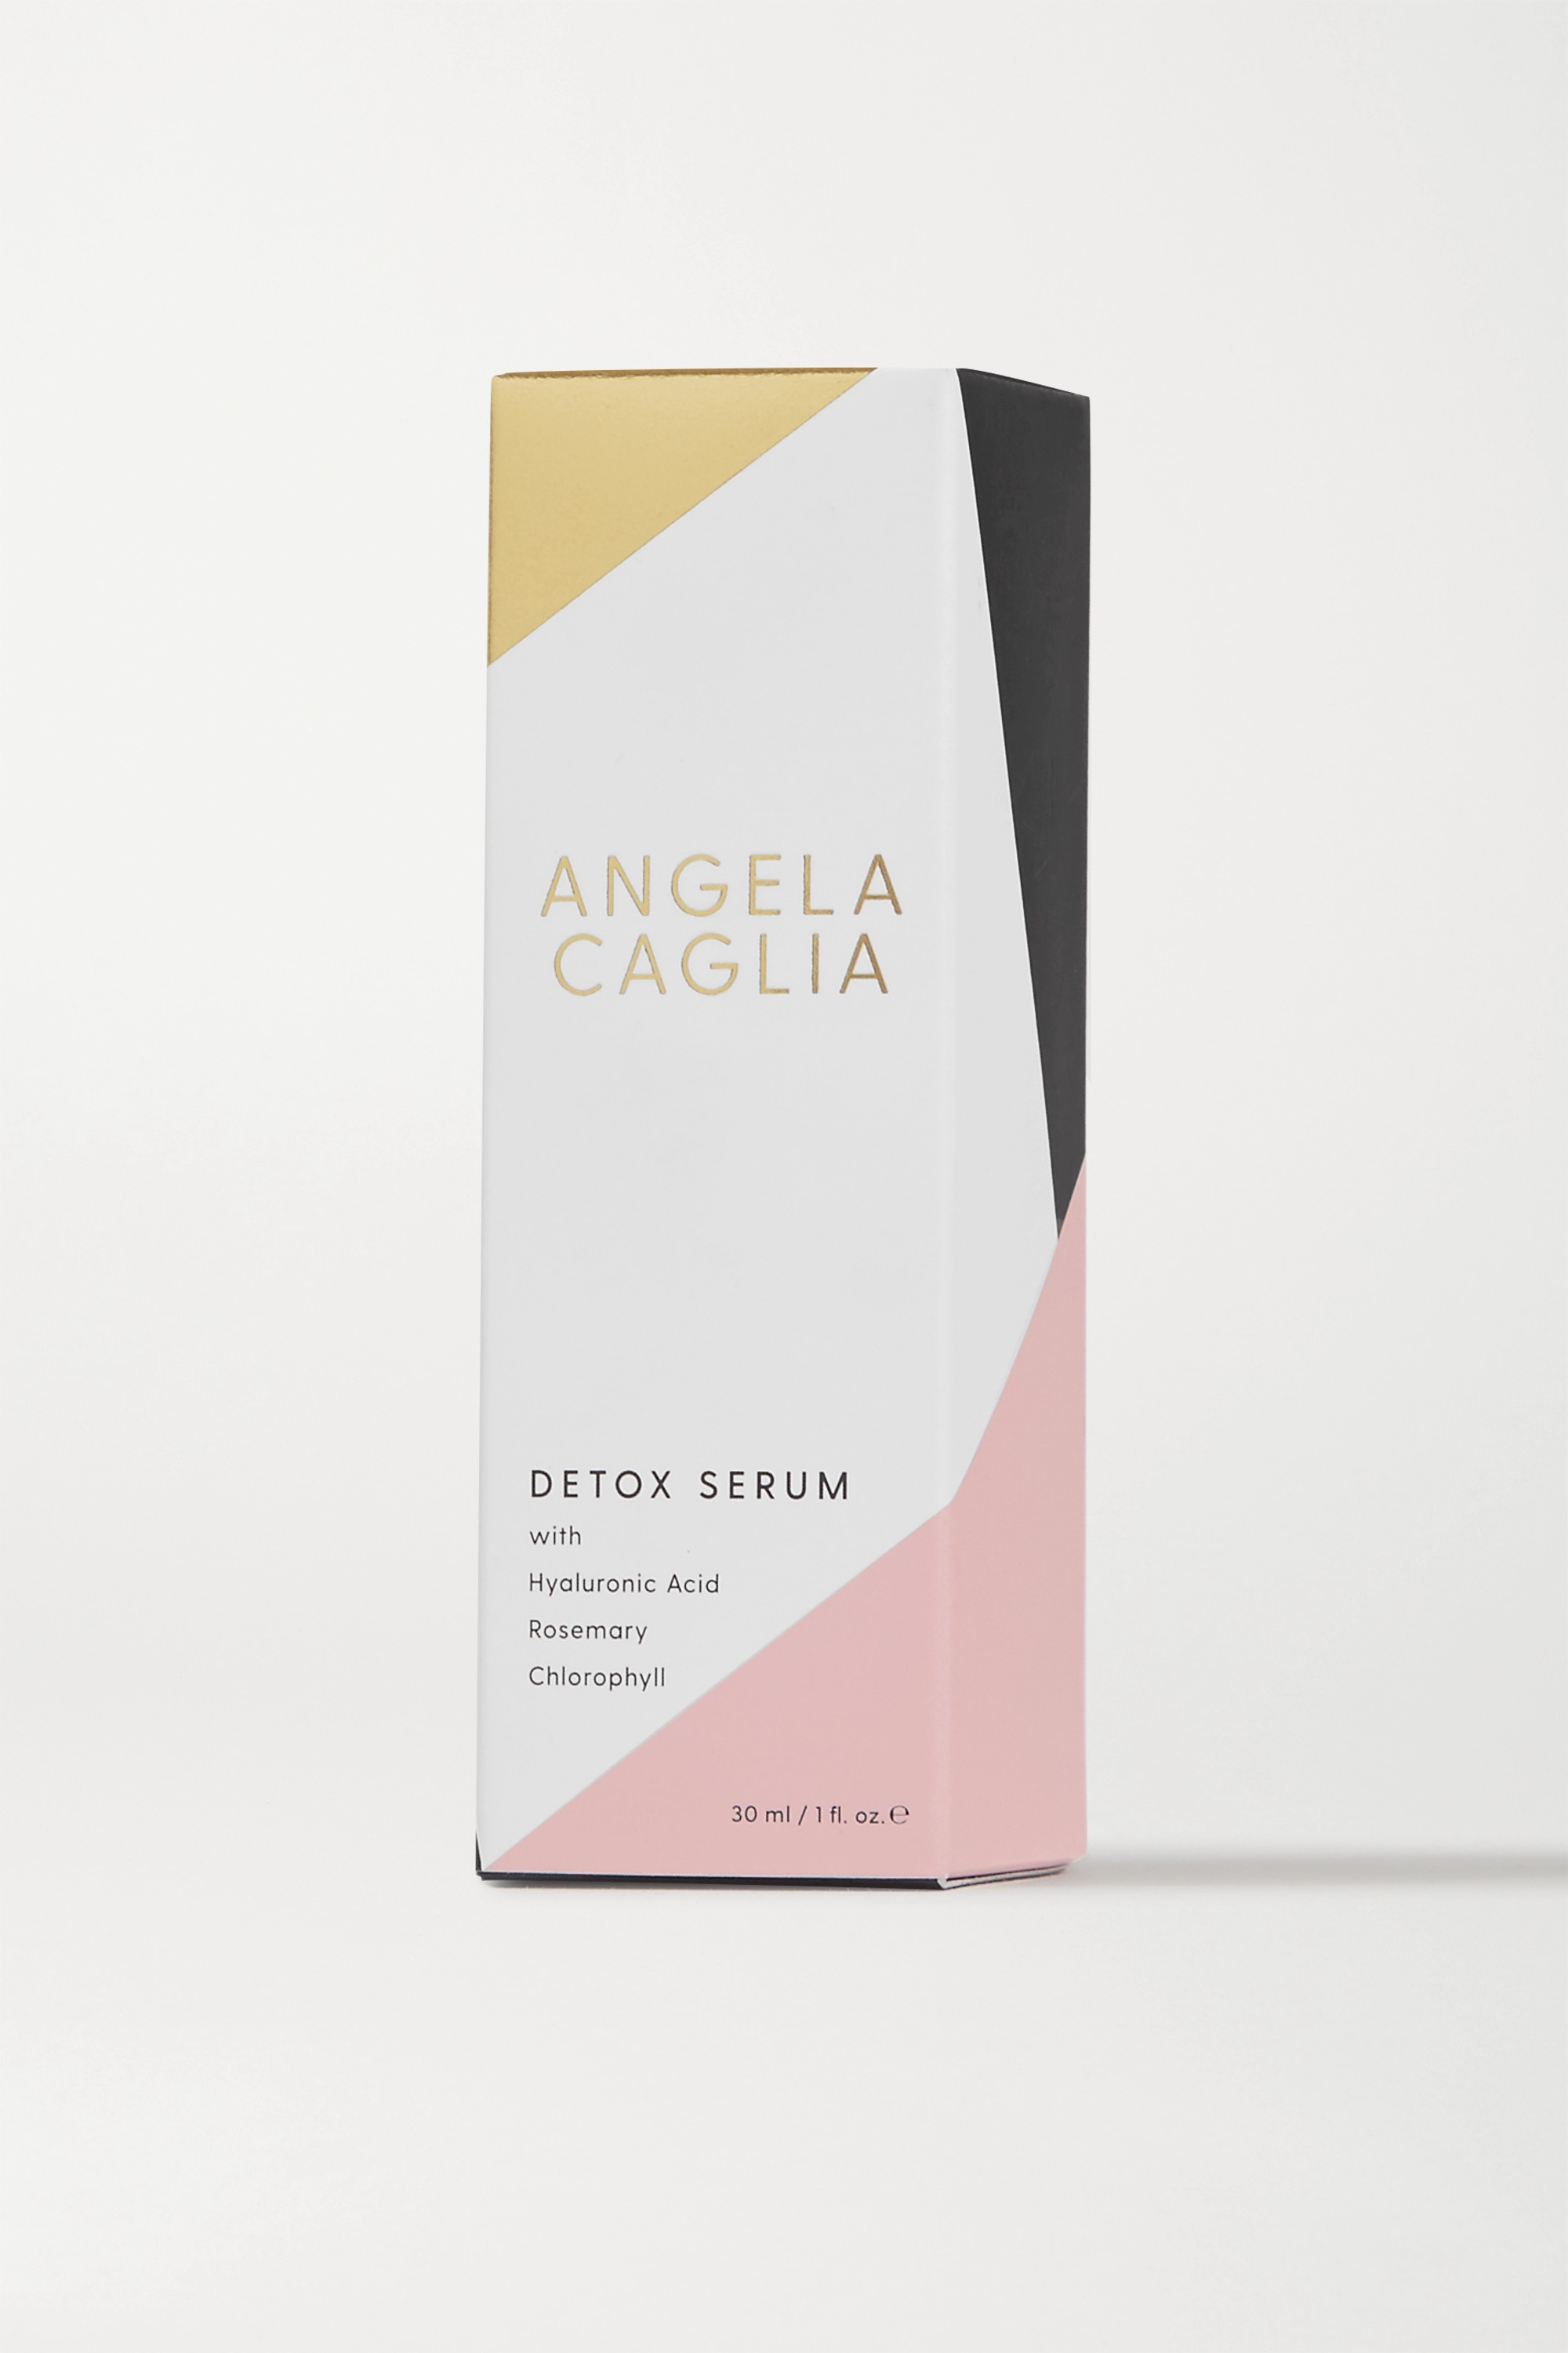 Angela Caglia Detox Serum, 30ml